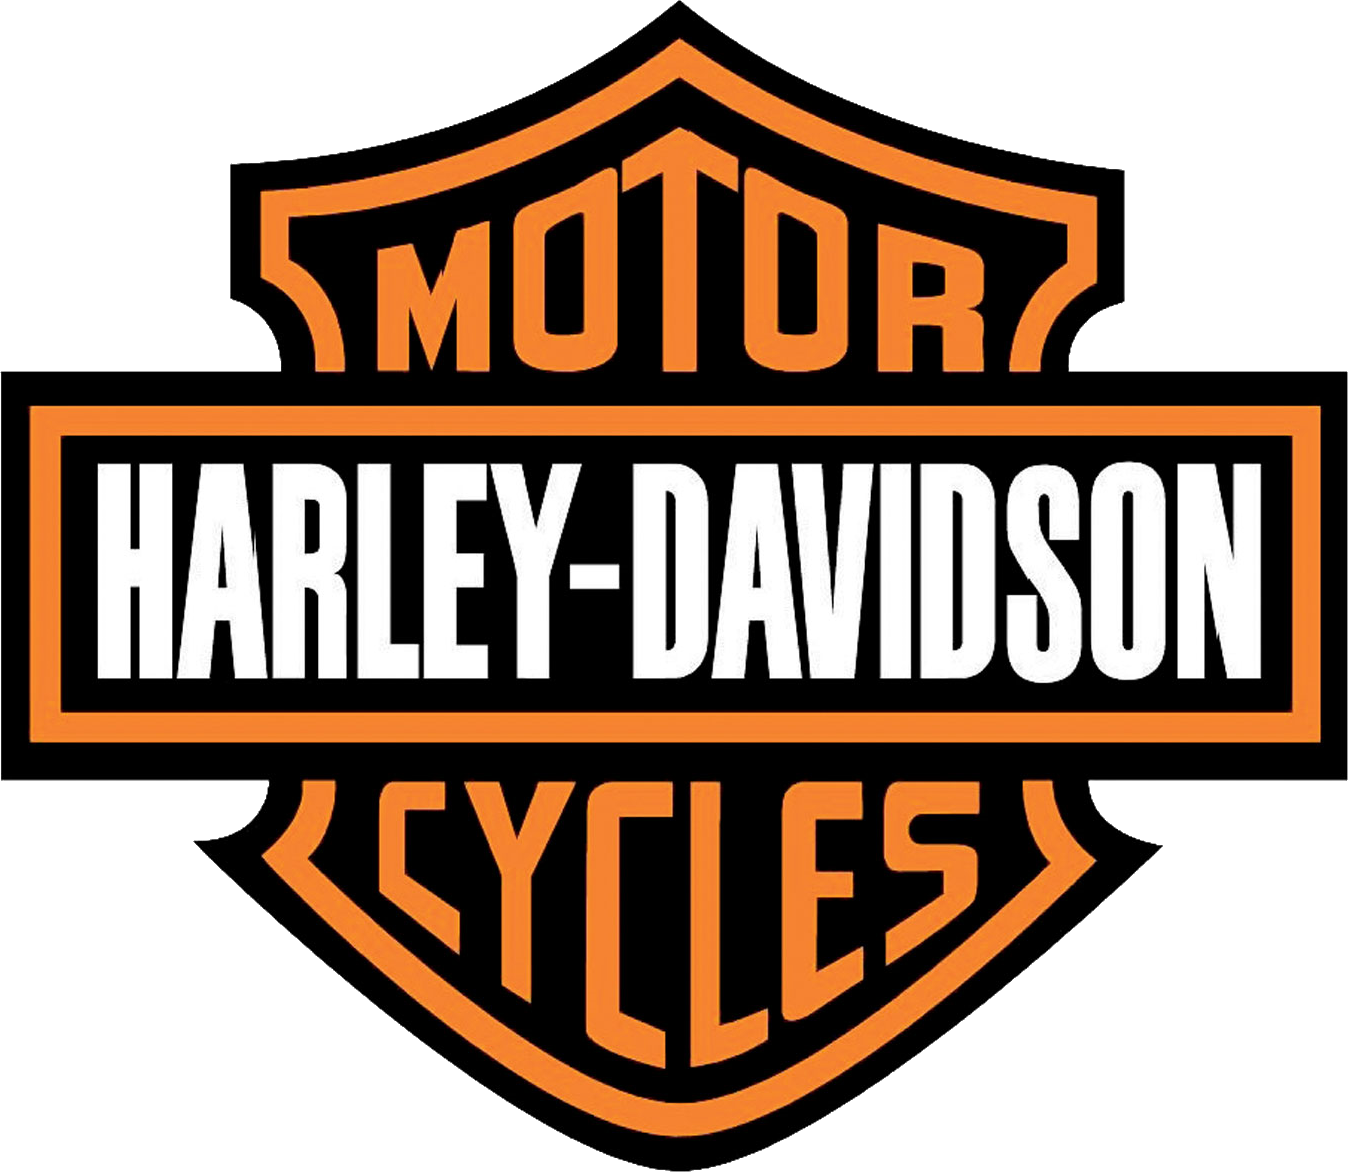 Motorcycle clipart norton motorcycle. Shield trend logo trends